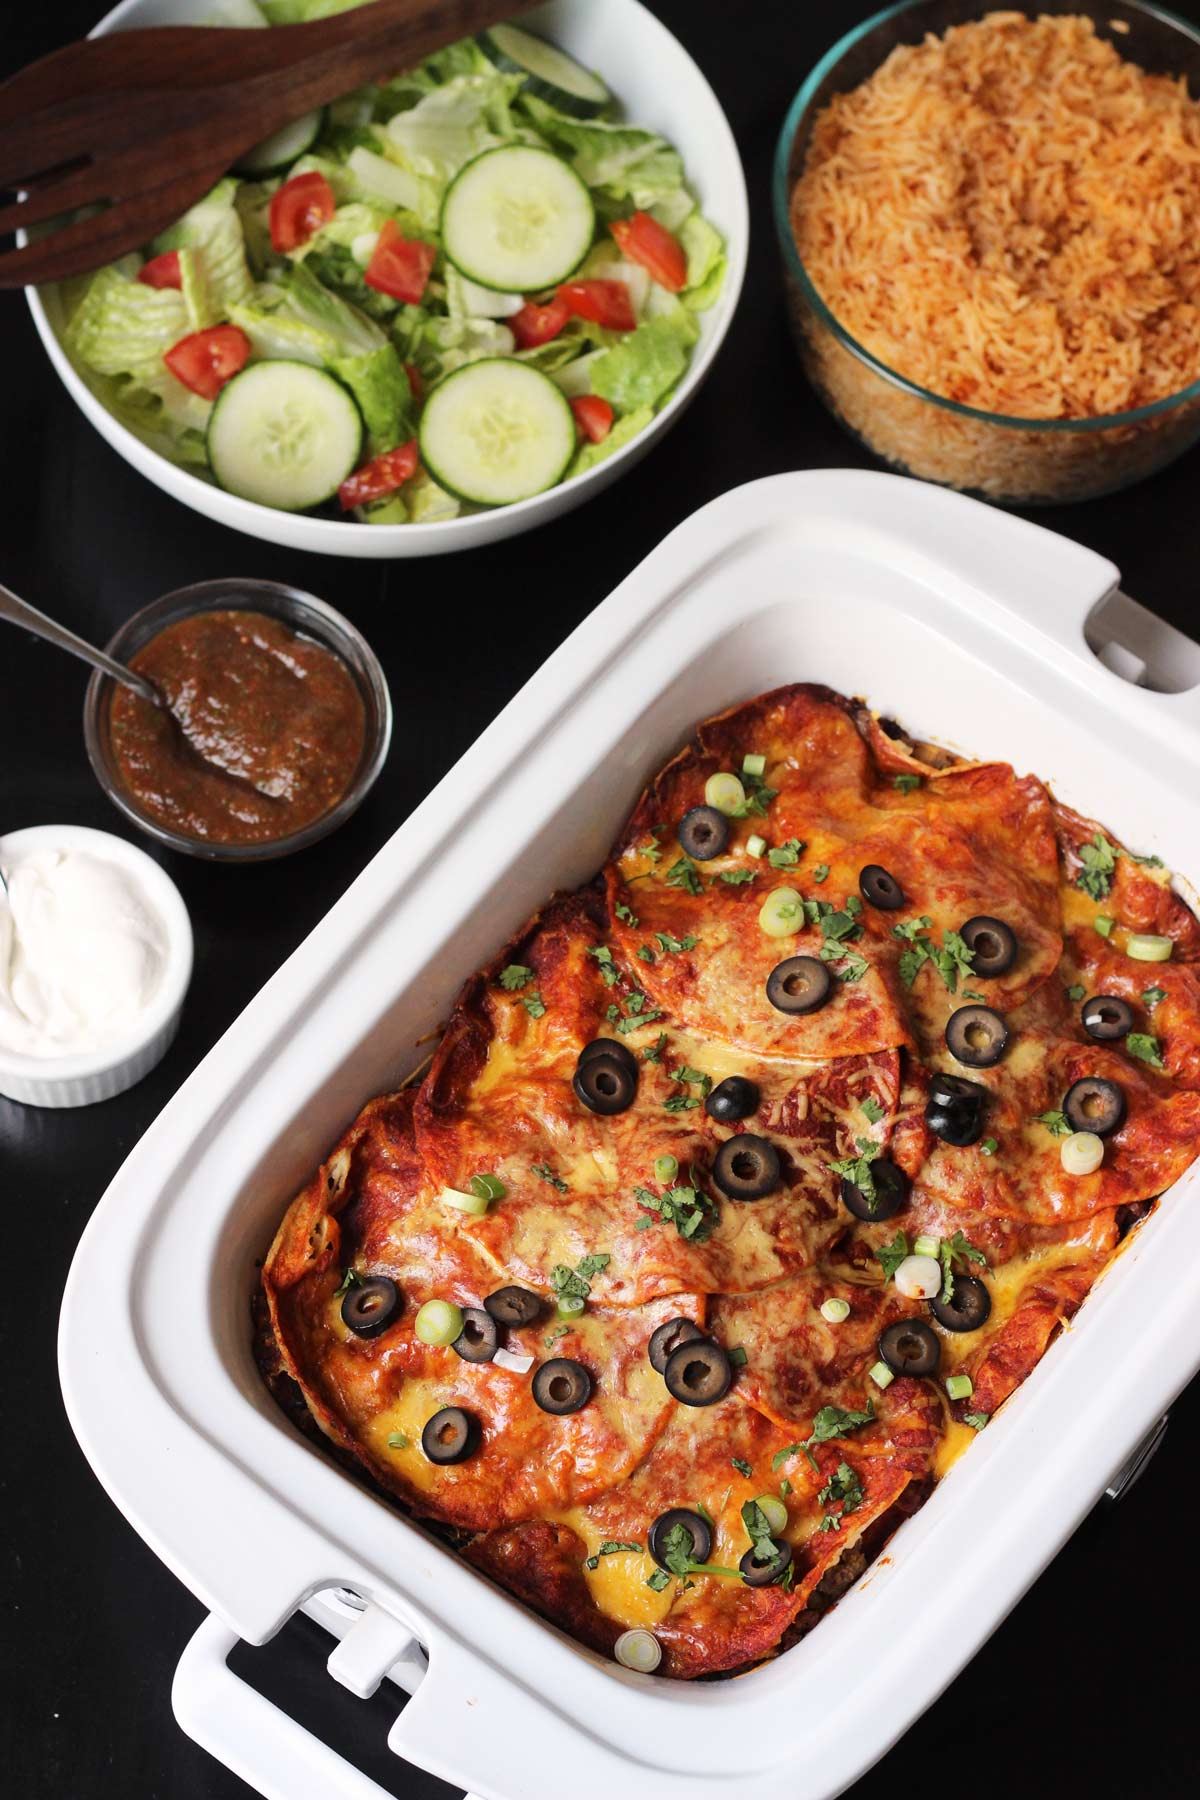 table set with casserole crock pot of enchiladas with toppings, rice, and salad.